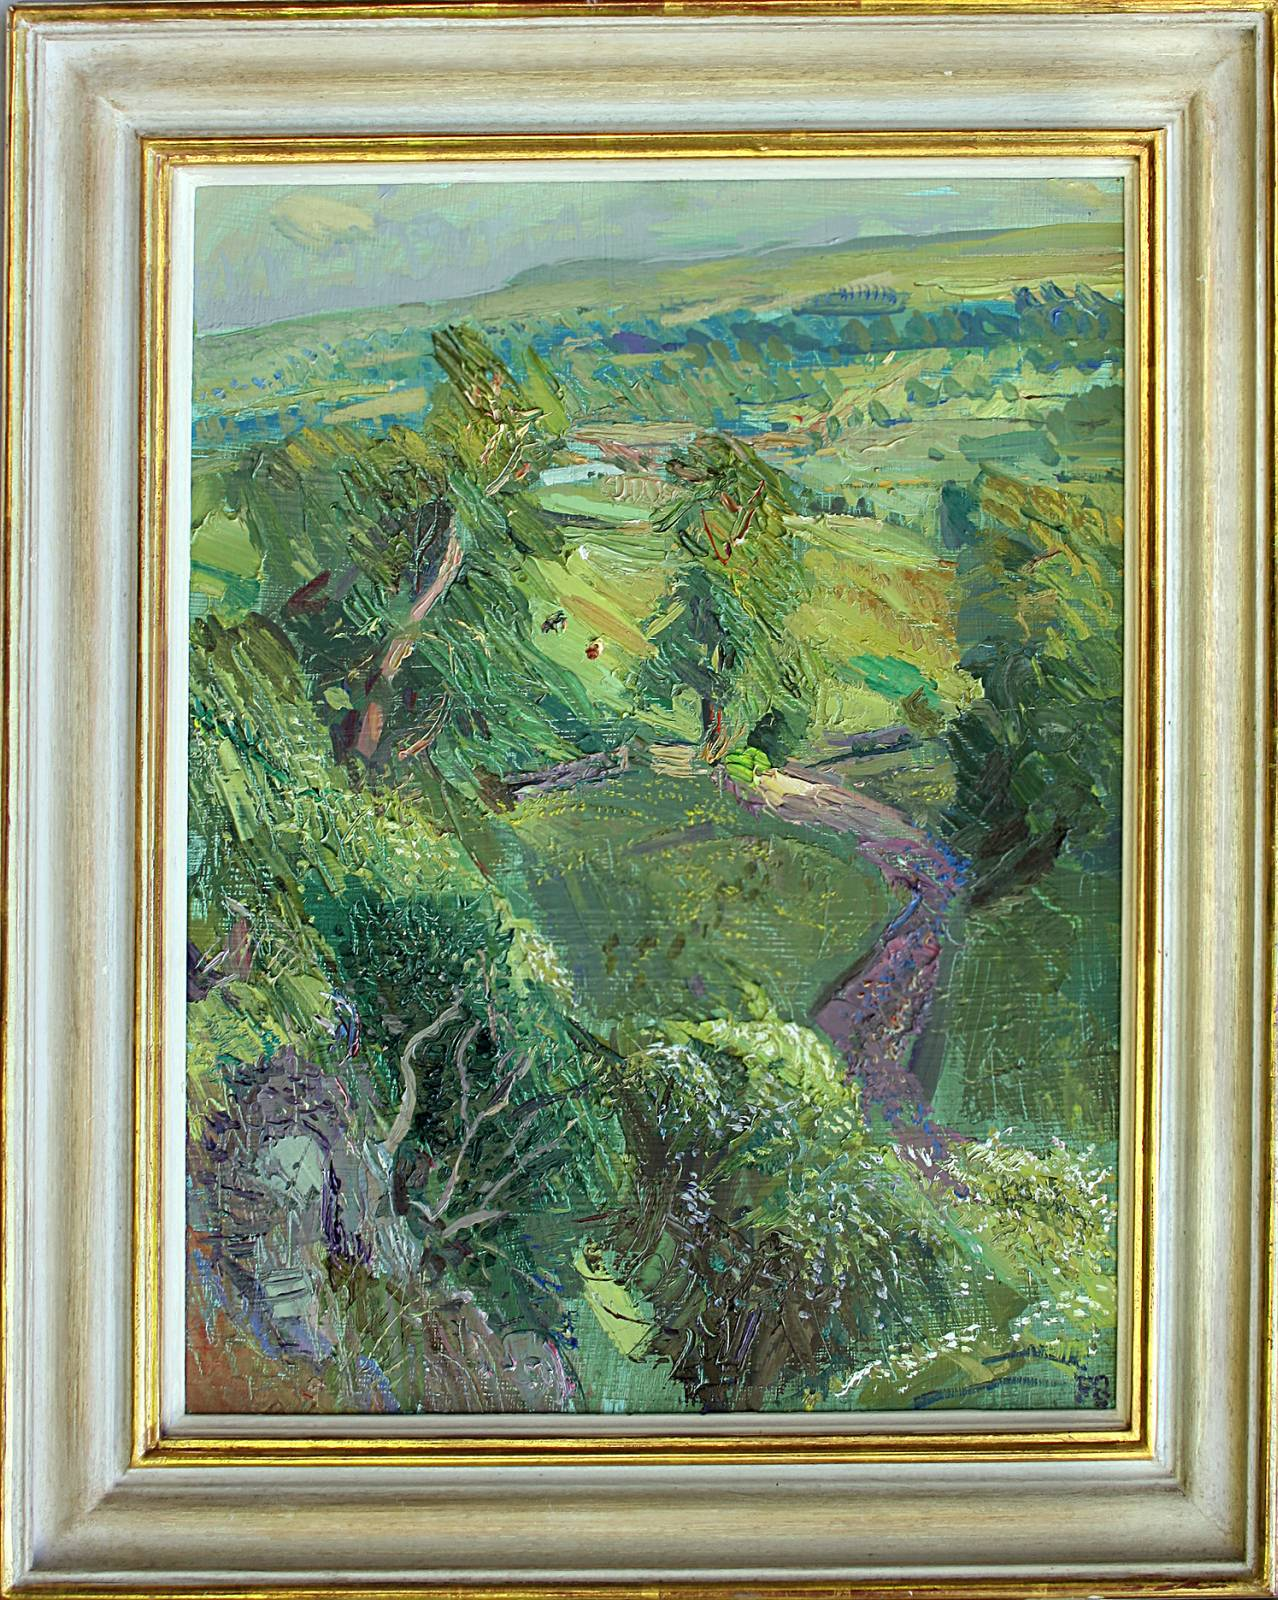 TOWARDS THE URE: JULY EVENING